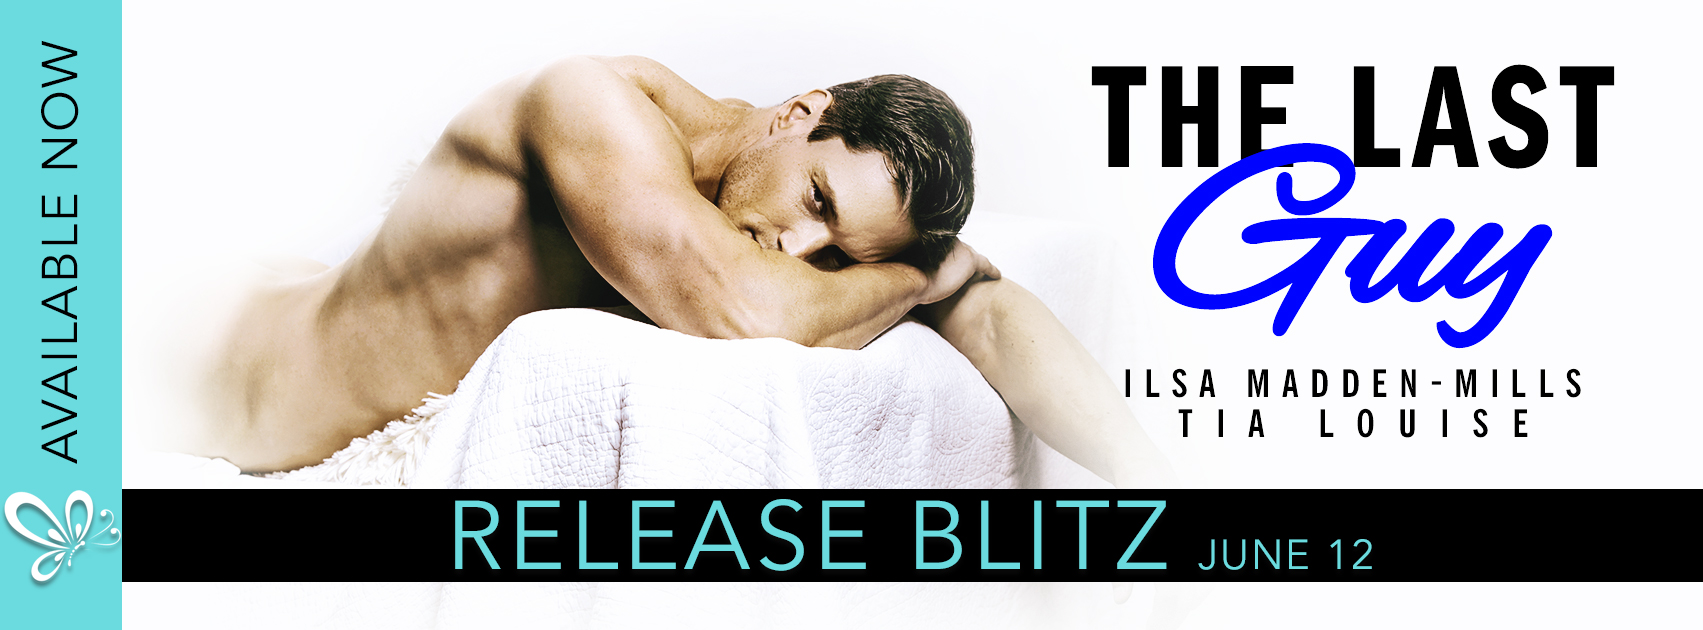 Release Blitz: The Last Guy by Ilsa Madden-Mills and Tia Louise